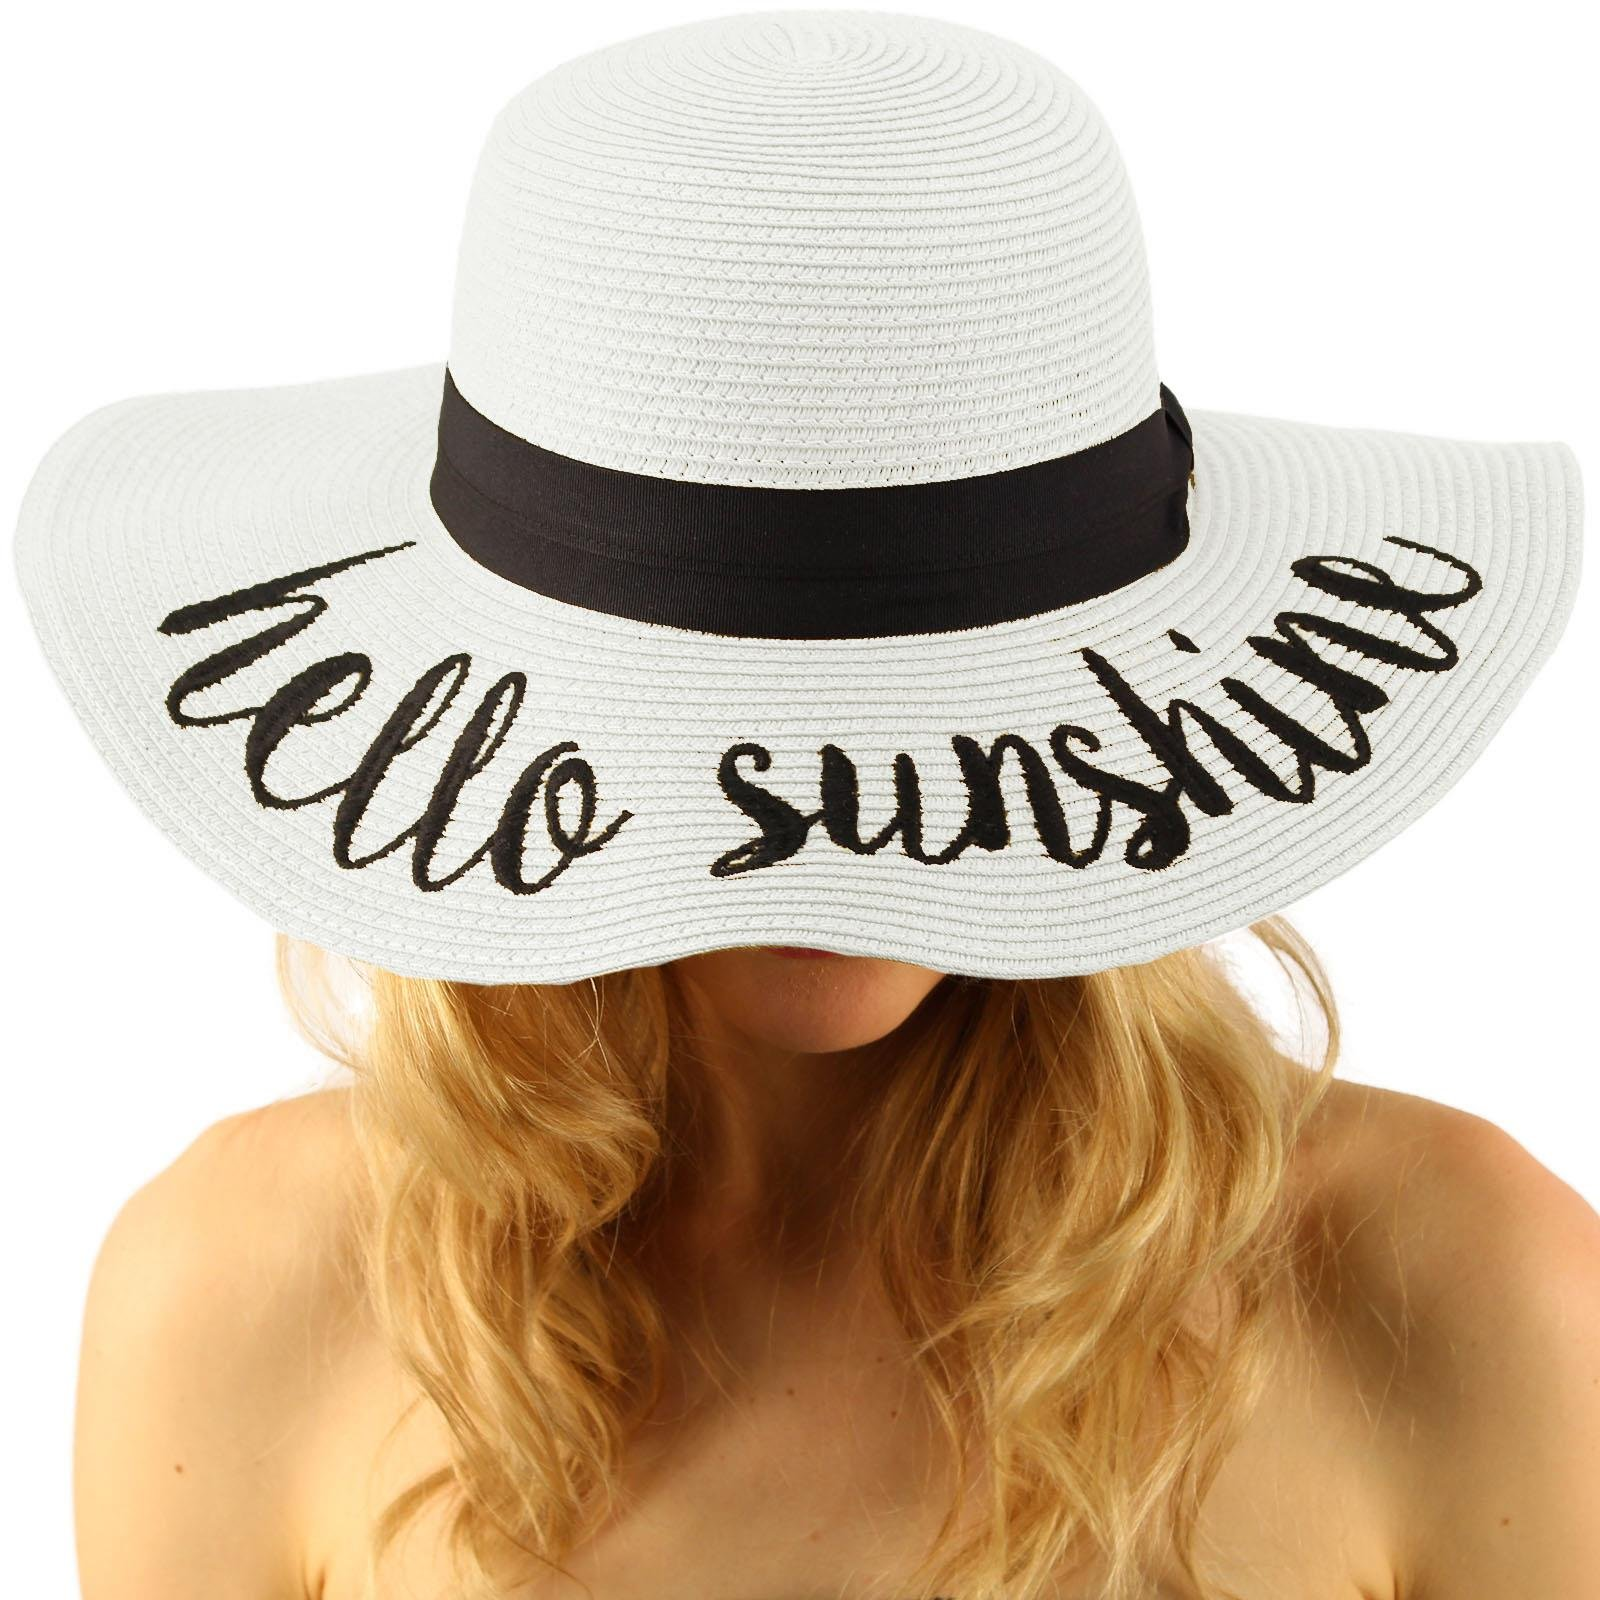 Fun Verbiage Elegant Wide Brim 4'' Summer Derby Beach Pool Floppy Dress Sun Hat Hello Sunshine, White